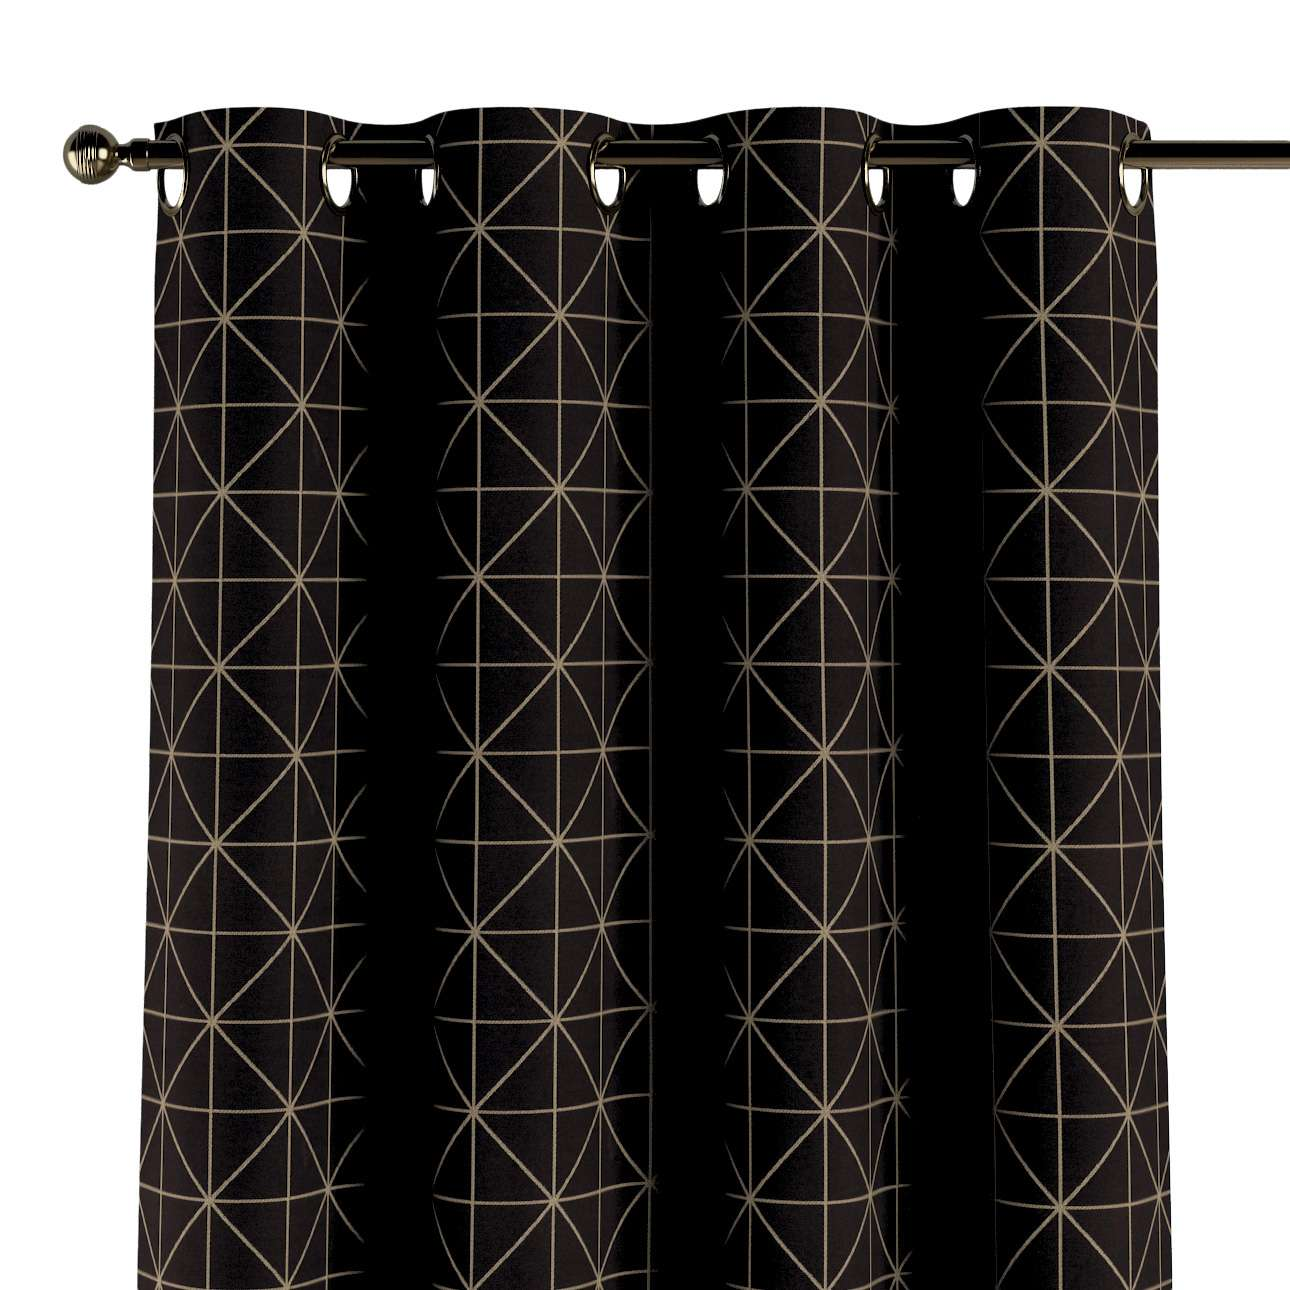 Eyelet curtains in collection Black & White, fabric: 142-55